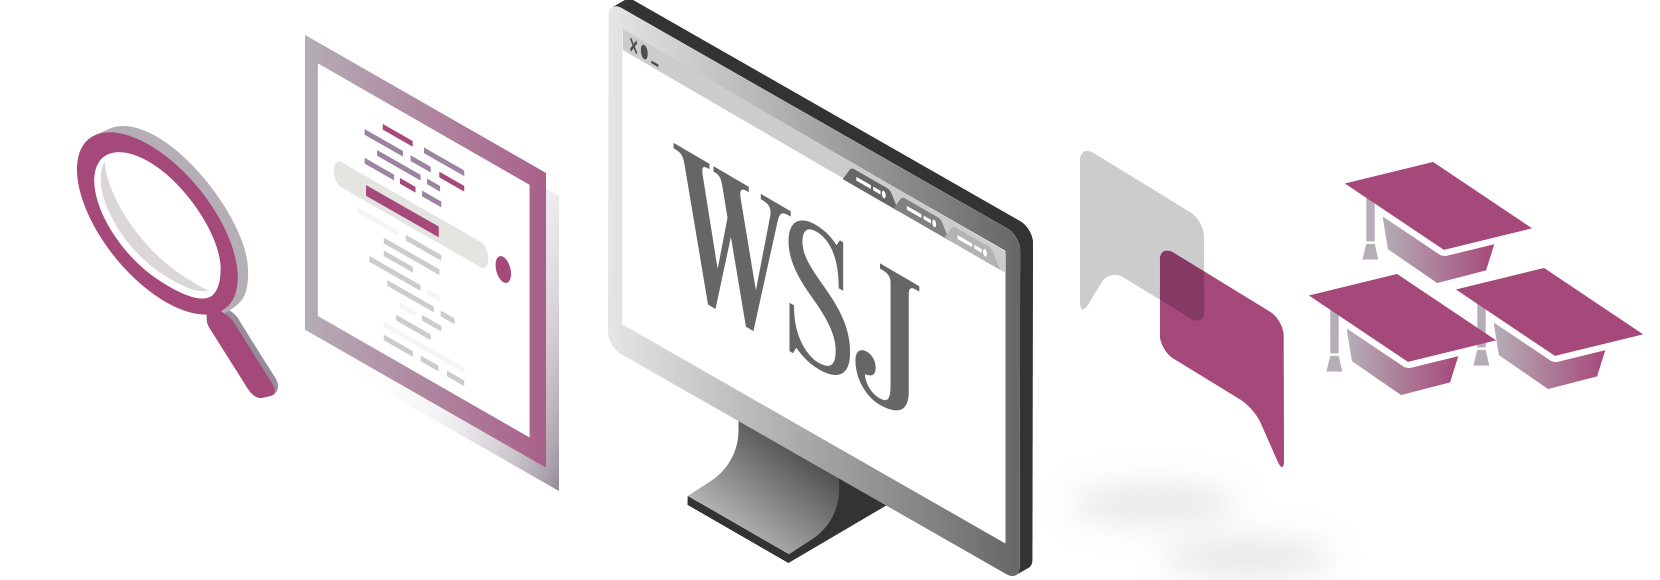 WSJ Student Membership Site License program